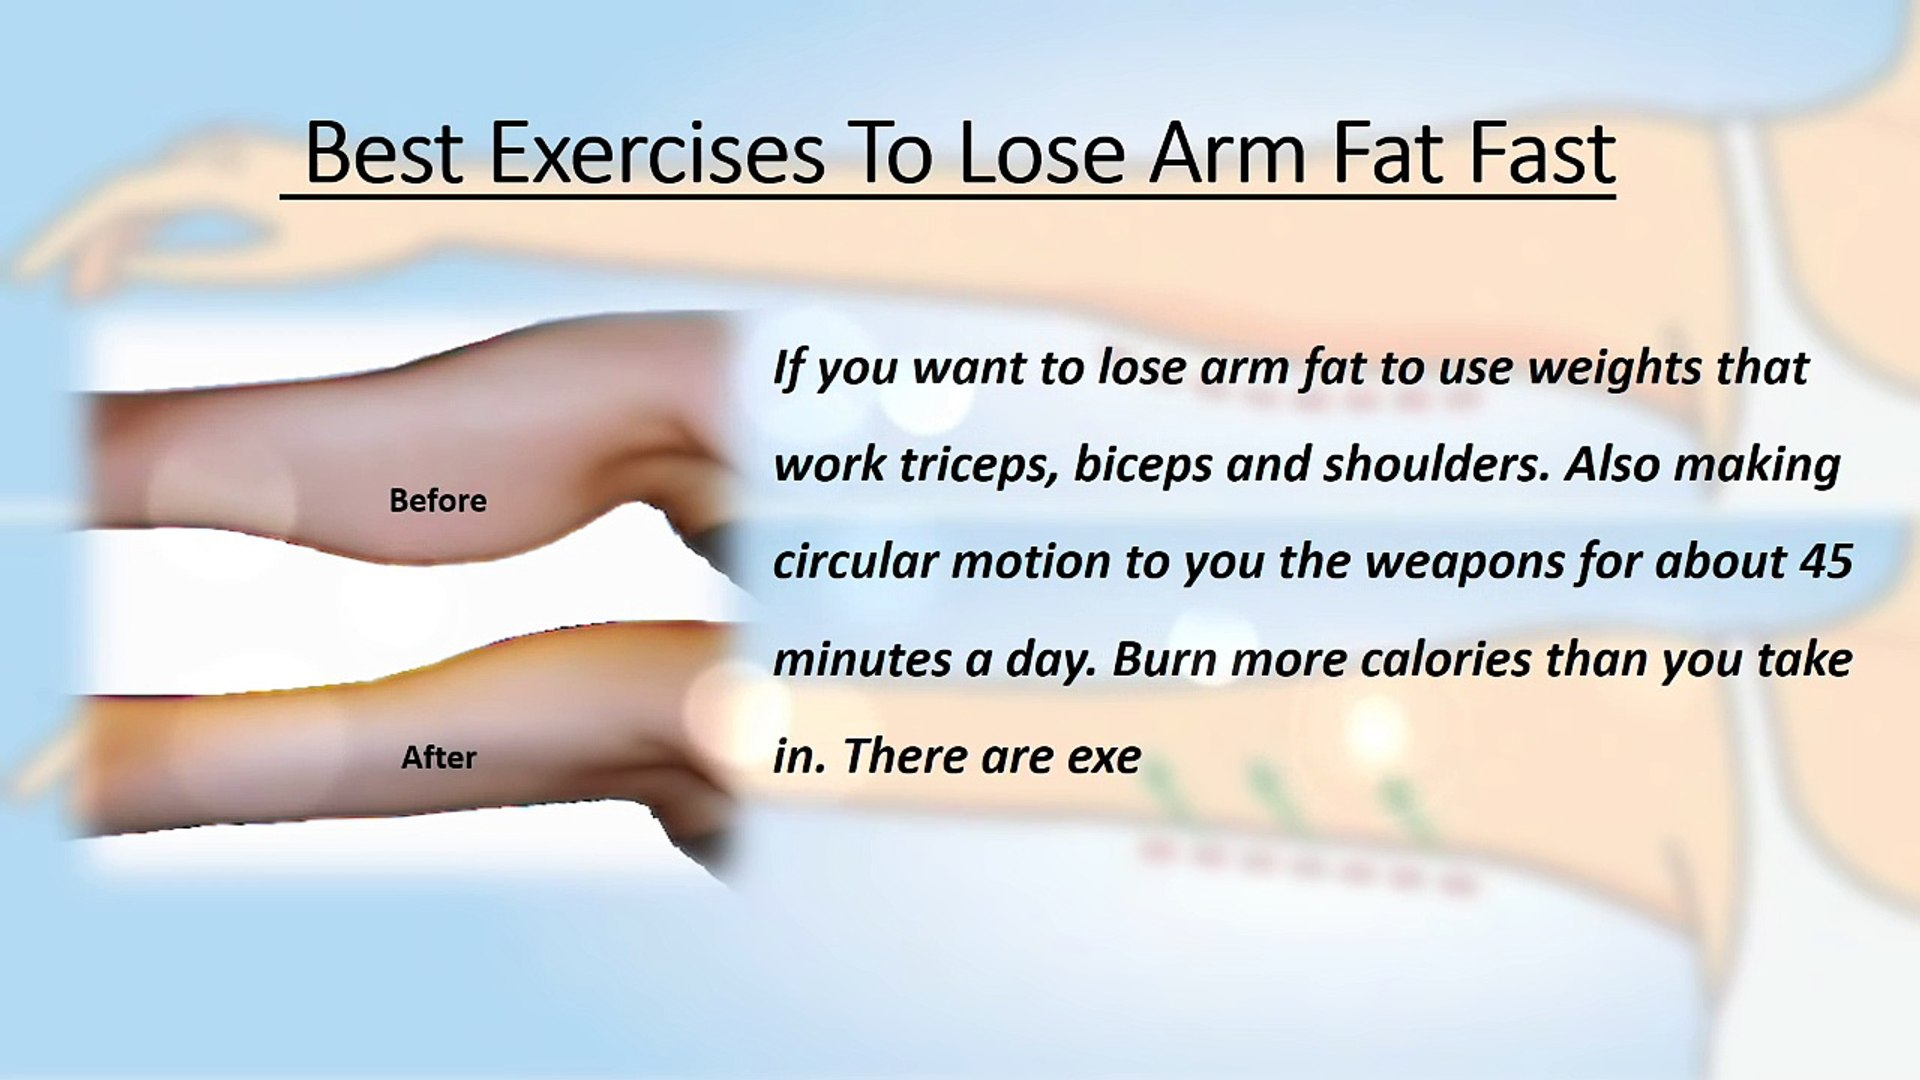 How To Lose Arm Fat Fast Best Exercises To Lose Arm Fat Fast